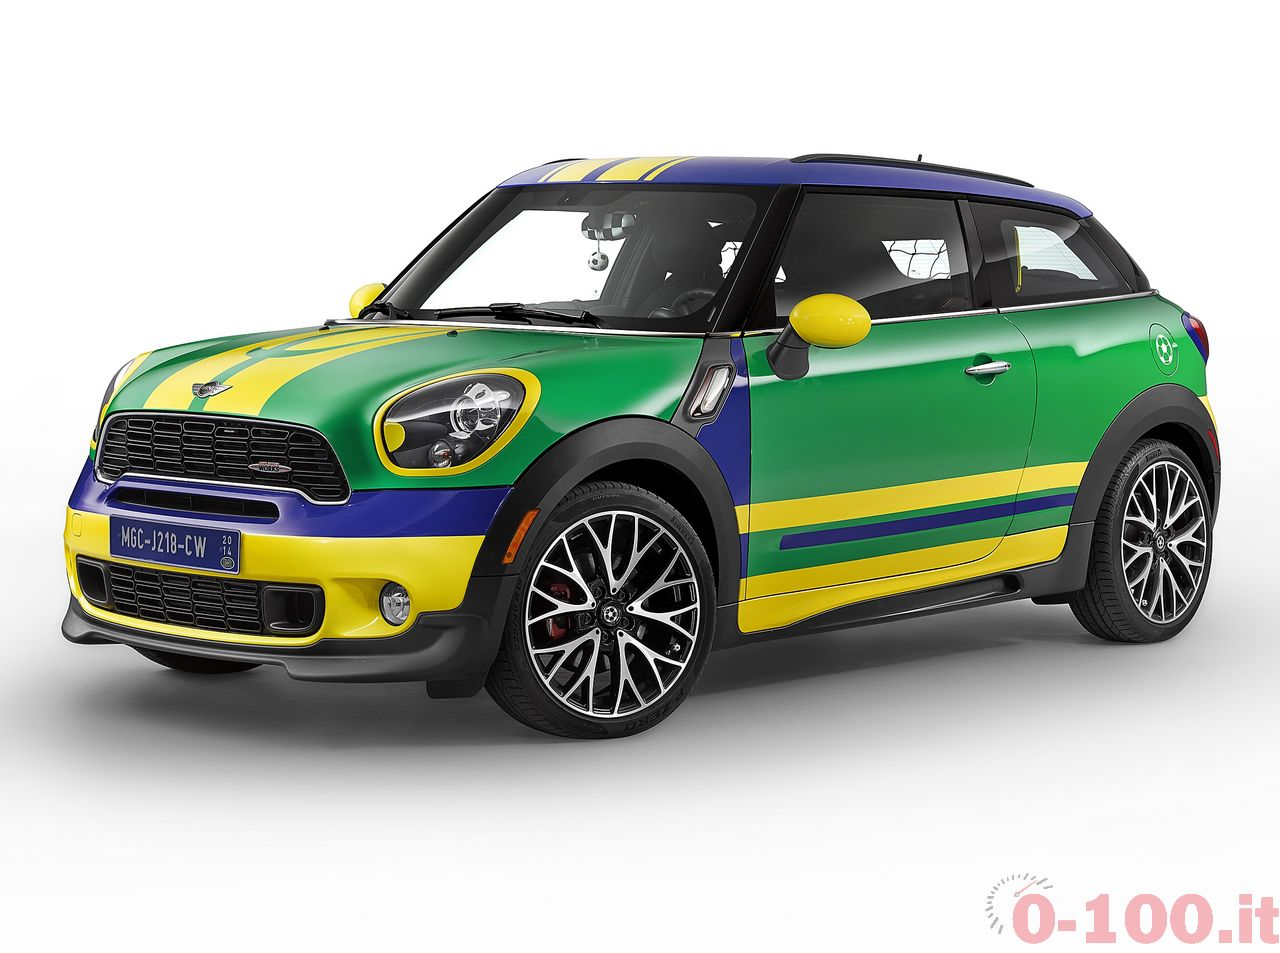 mini-paceman-goalcooper-0-100_3